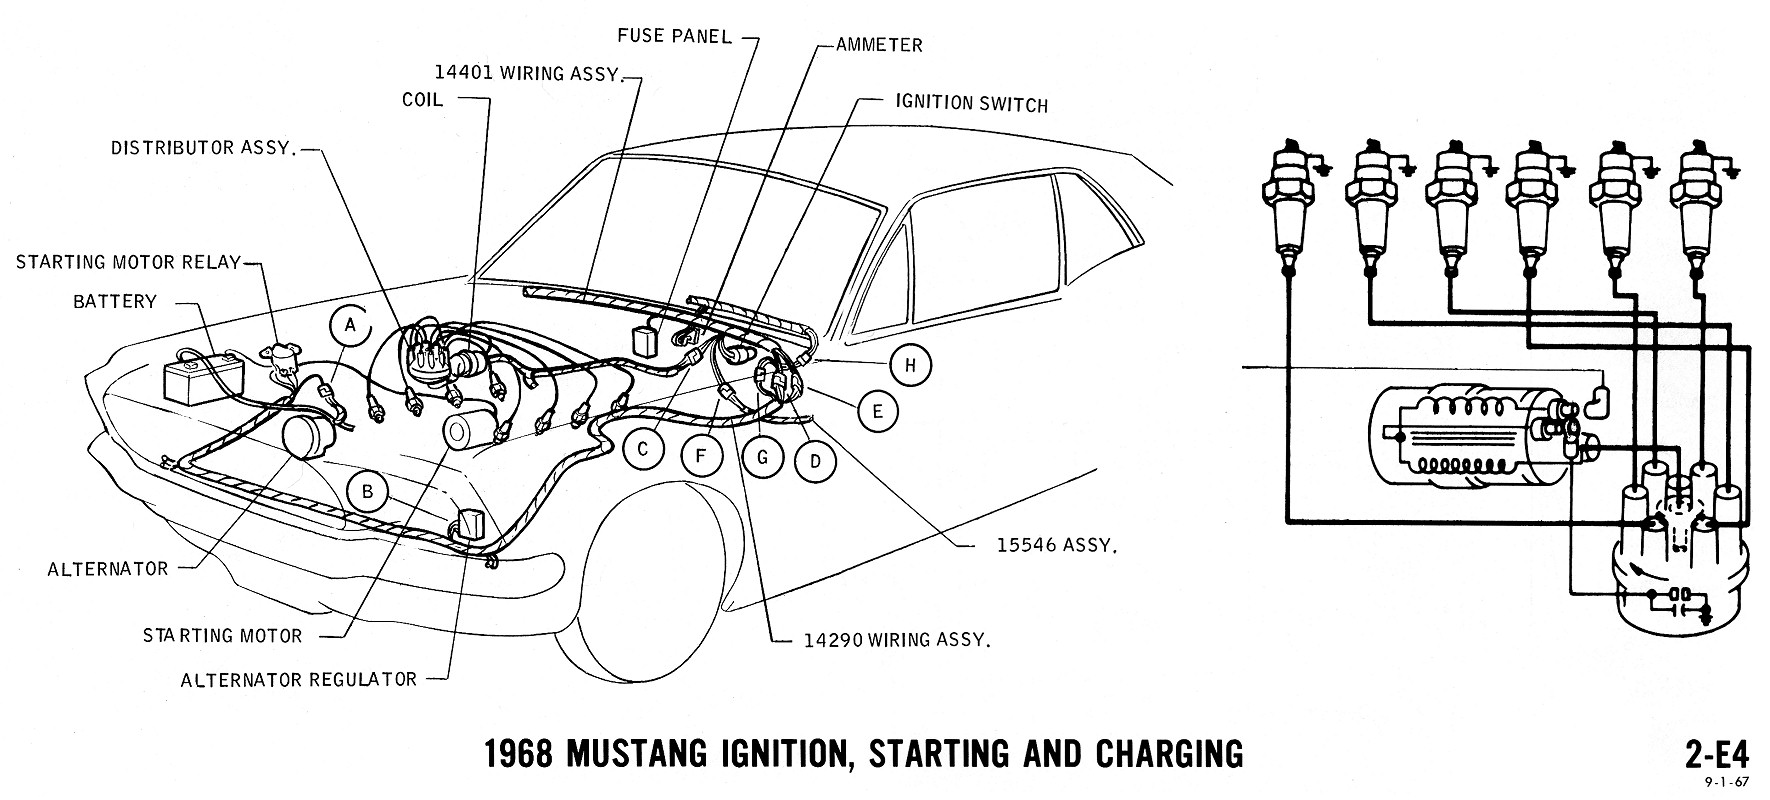 1968 Mustang Wiring Diagrams And Vacuum Schematics Average Joe Ford Ignition Coil Diagram Starting Charging 2